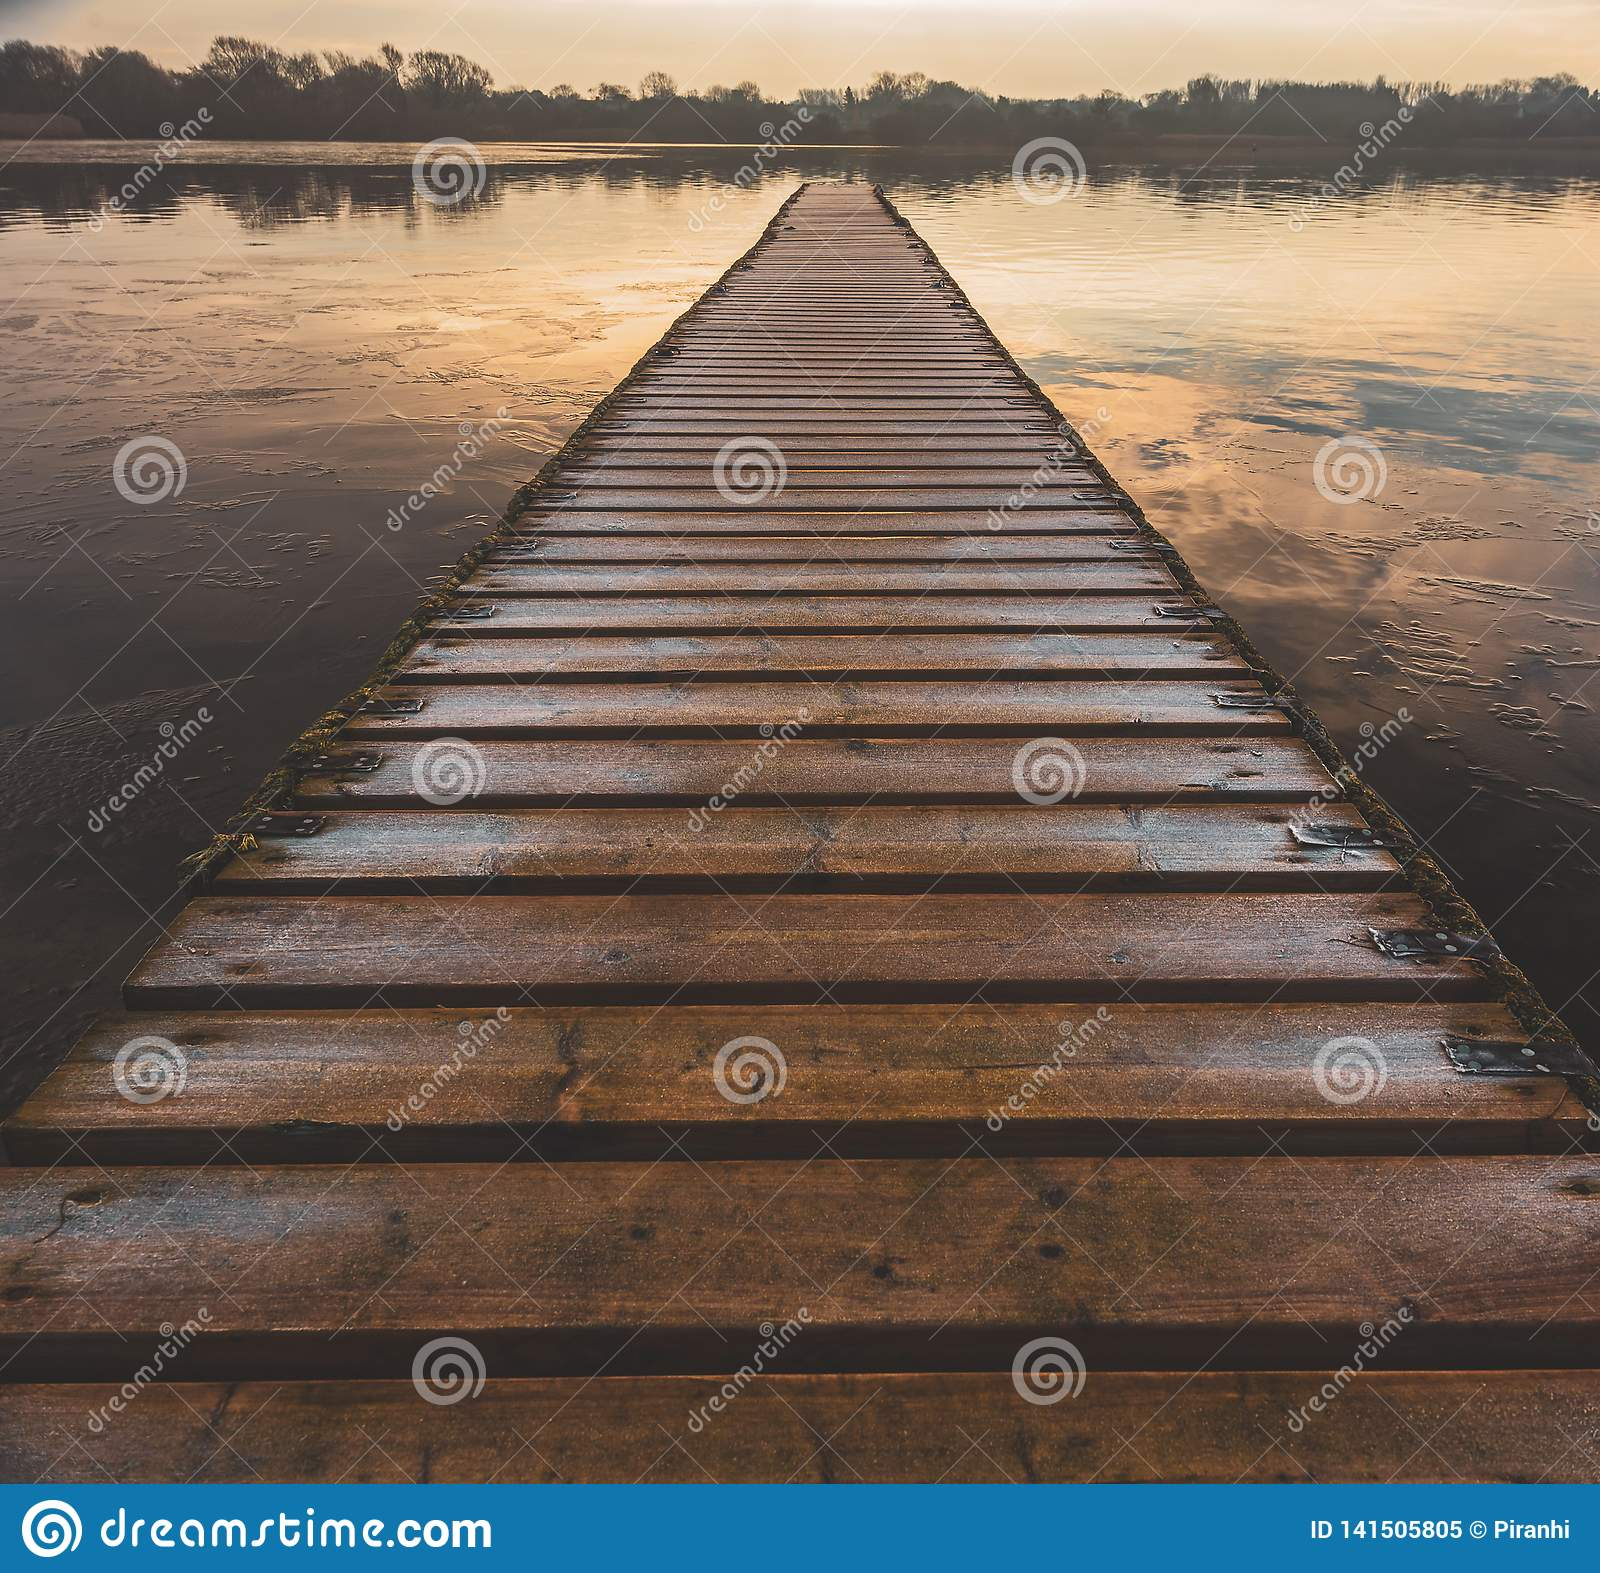 A dangerous frozen wooden walkway leads out into the middle of a lake